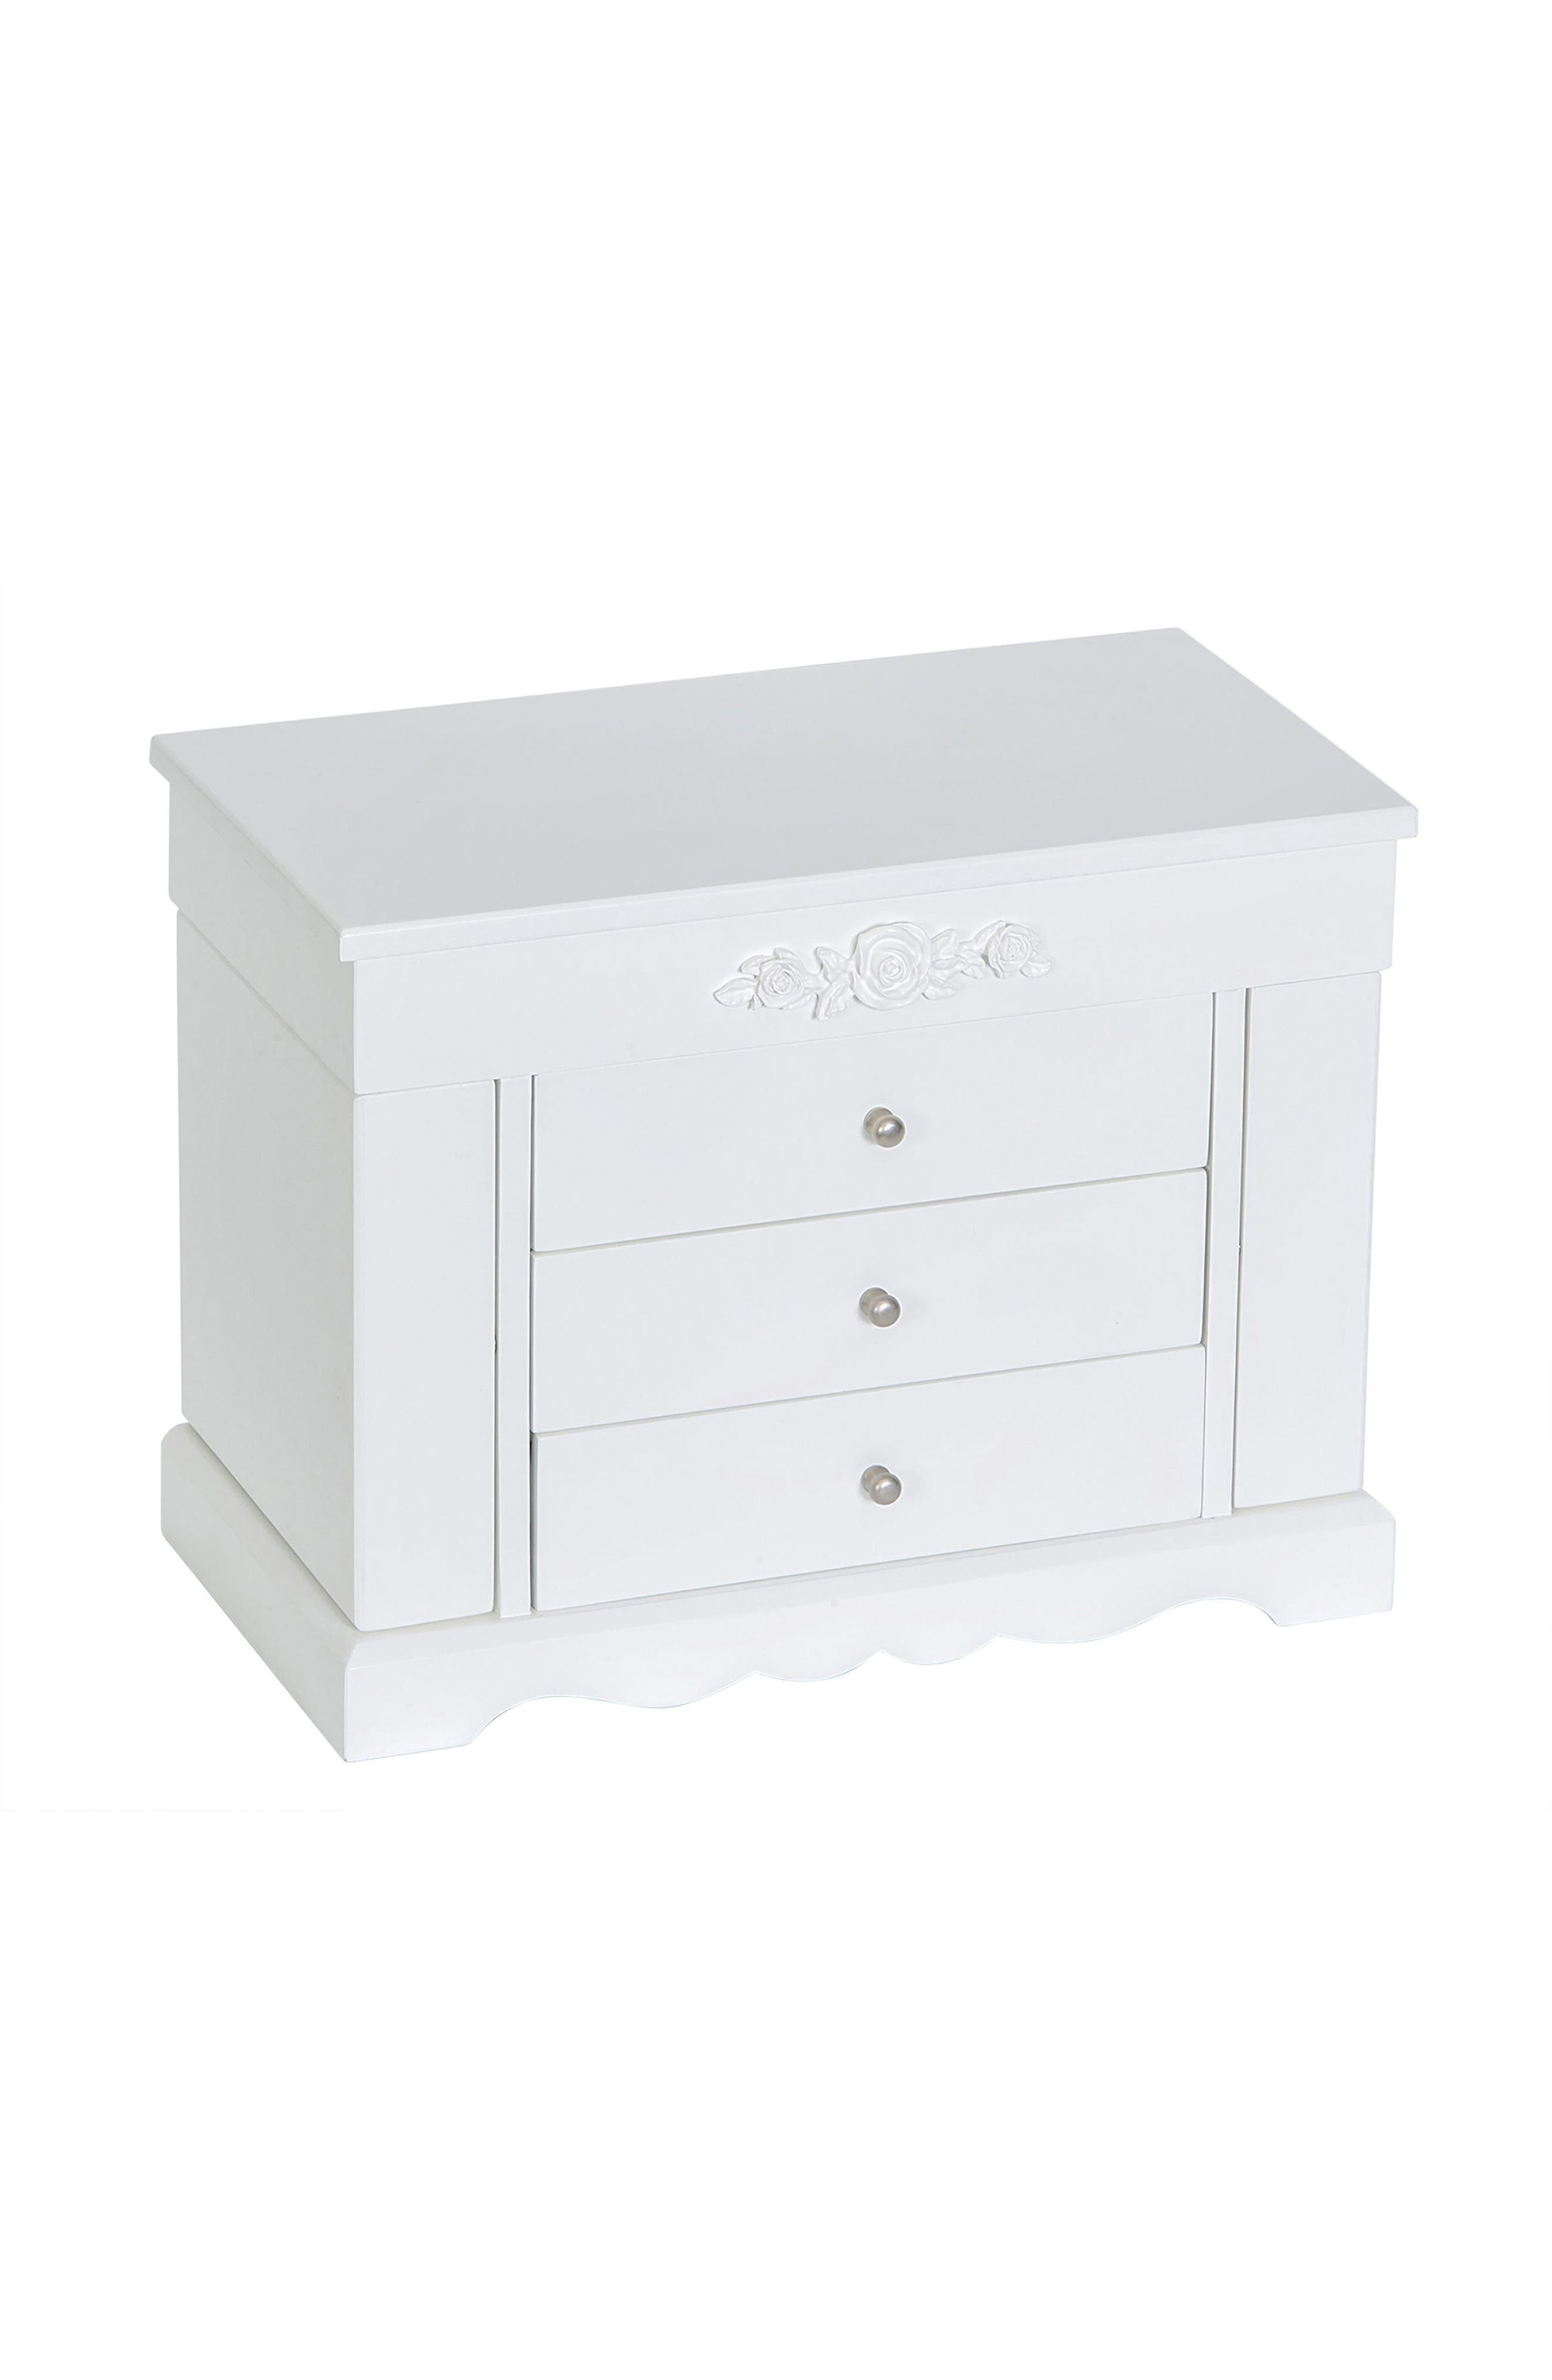 Montague Jewelry Box,                         Main,                         color, 100